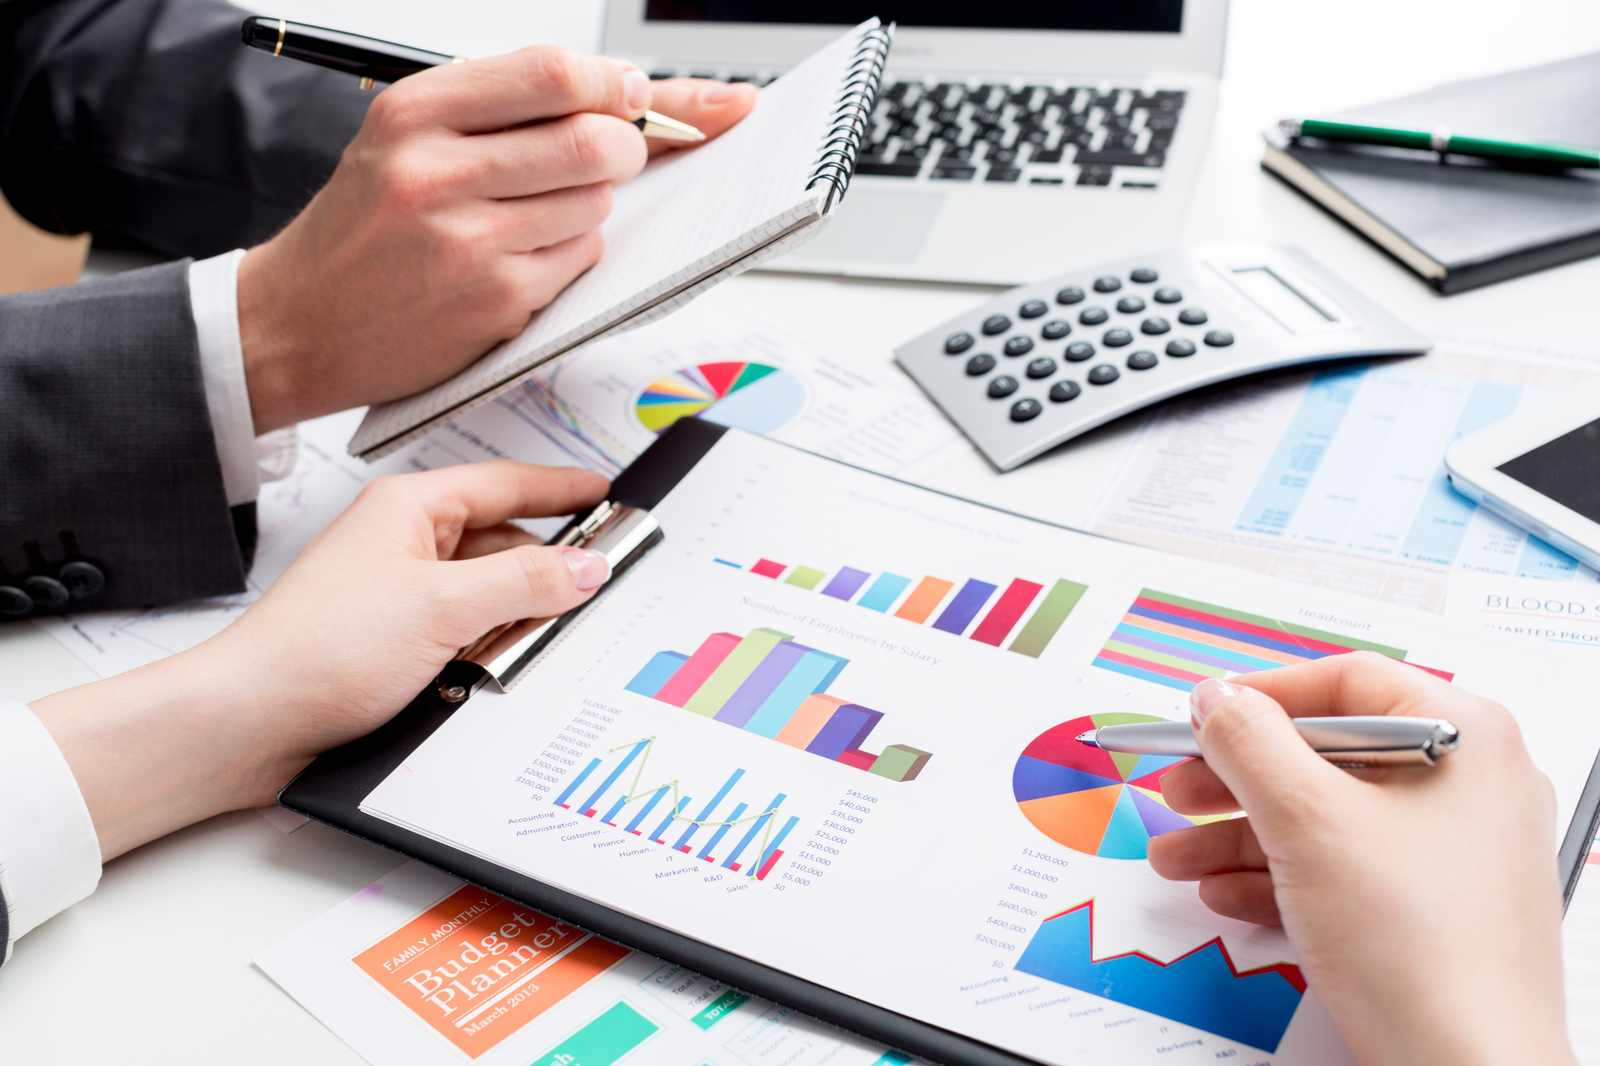 Graphs, pie charts and calculator